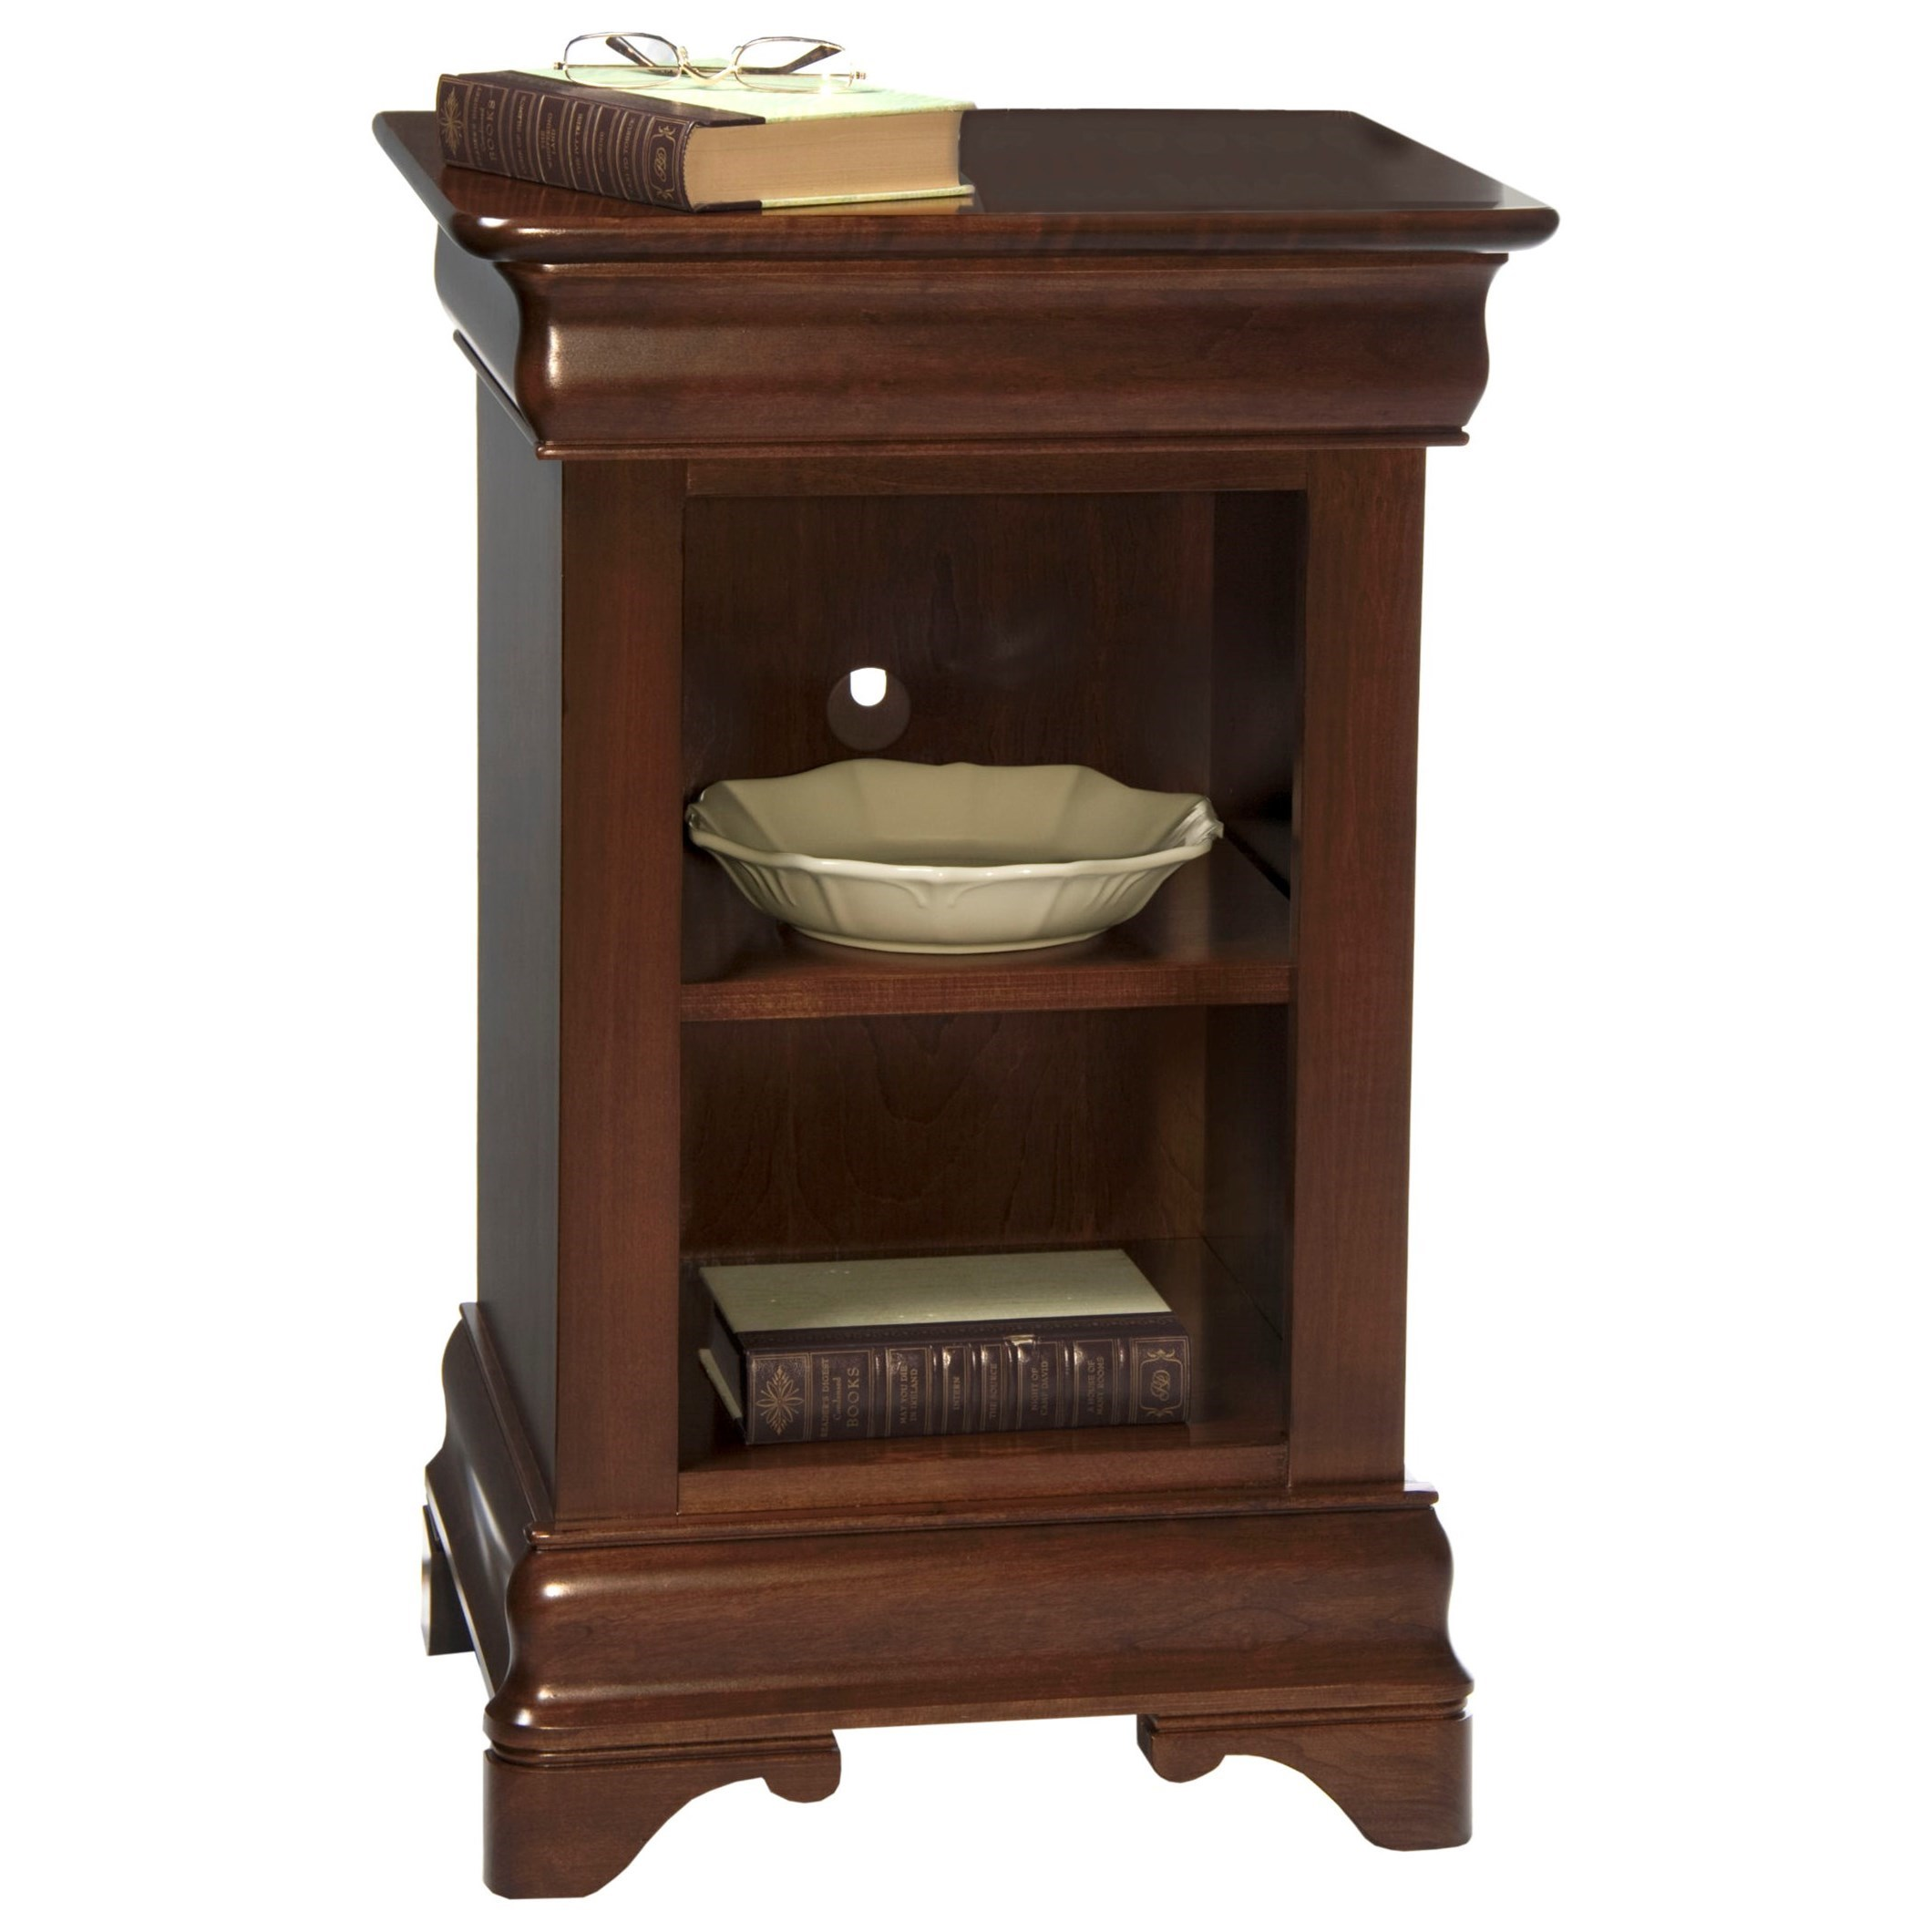 Chateau Fontaine Open Night Stand by Durham at Jordan's Home Furnishings